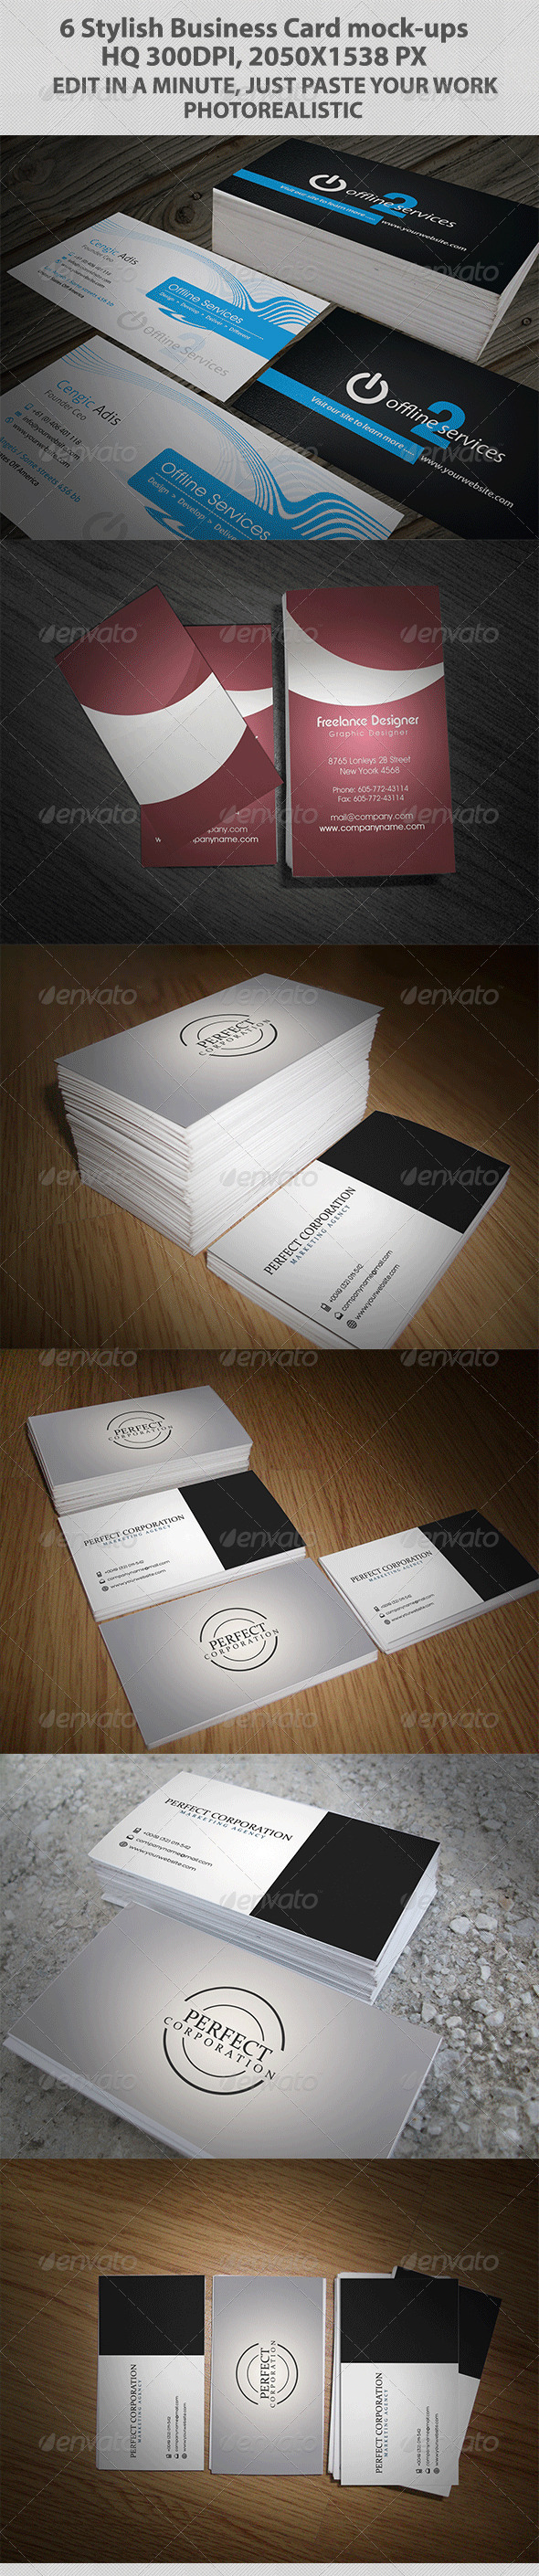 Six Stylish Business Card Mock-ups - Business Cards Print